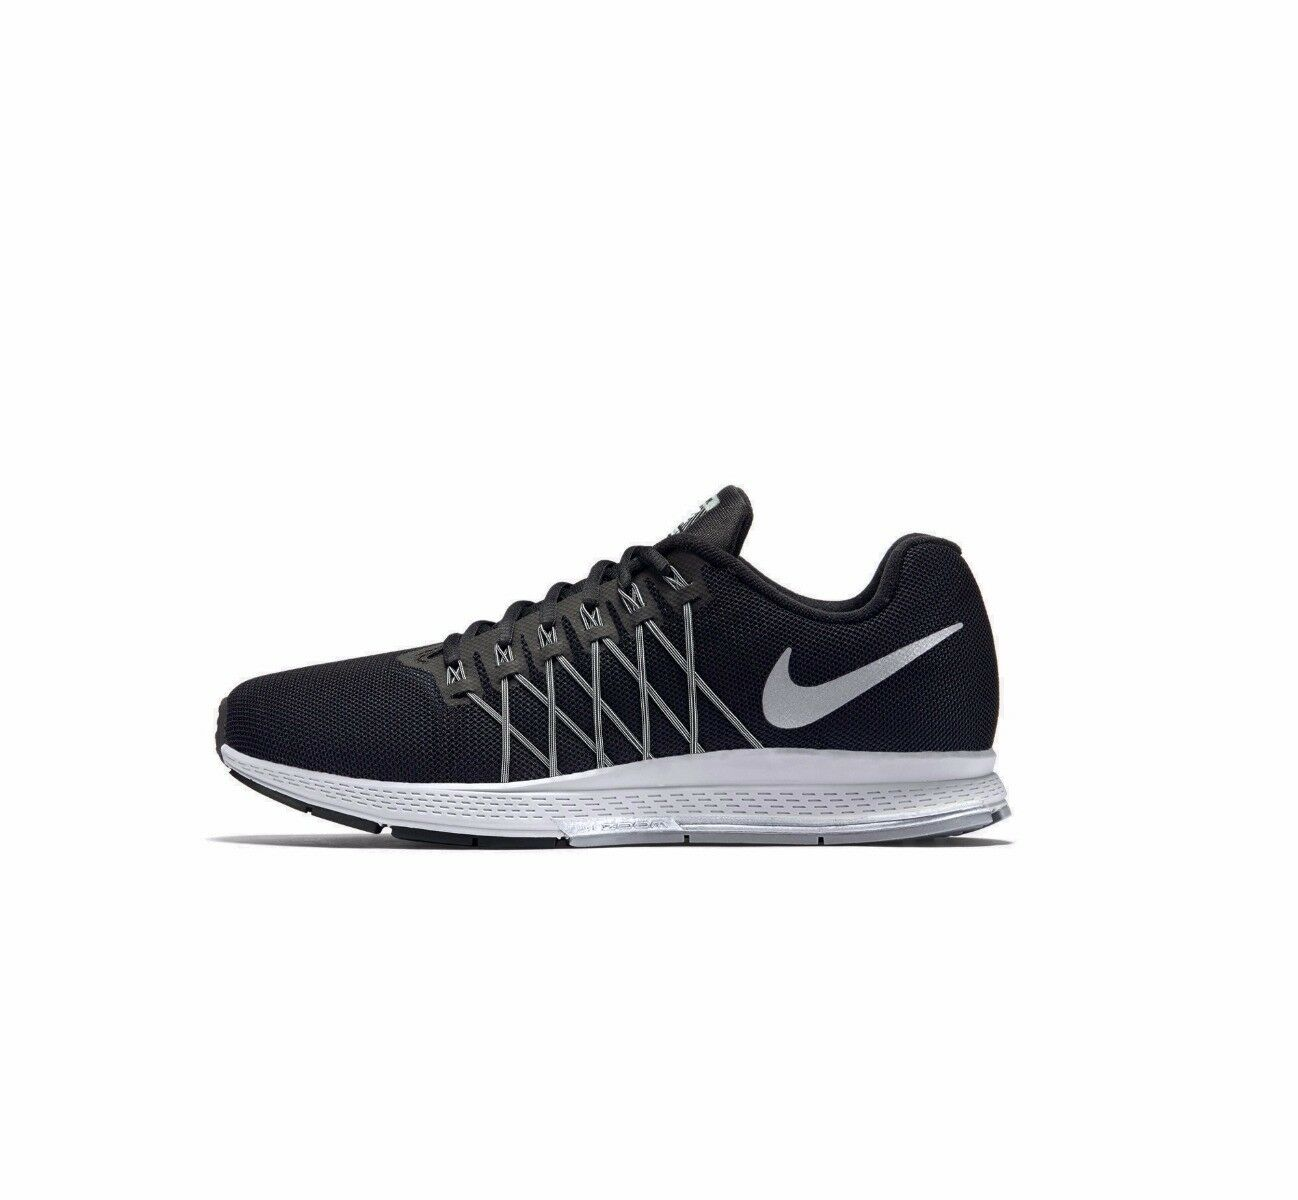 NIKE AIR PEGASUS 32 Taille de la7 - 11 noir baskets course